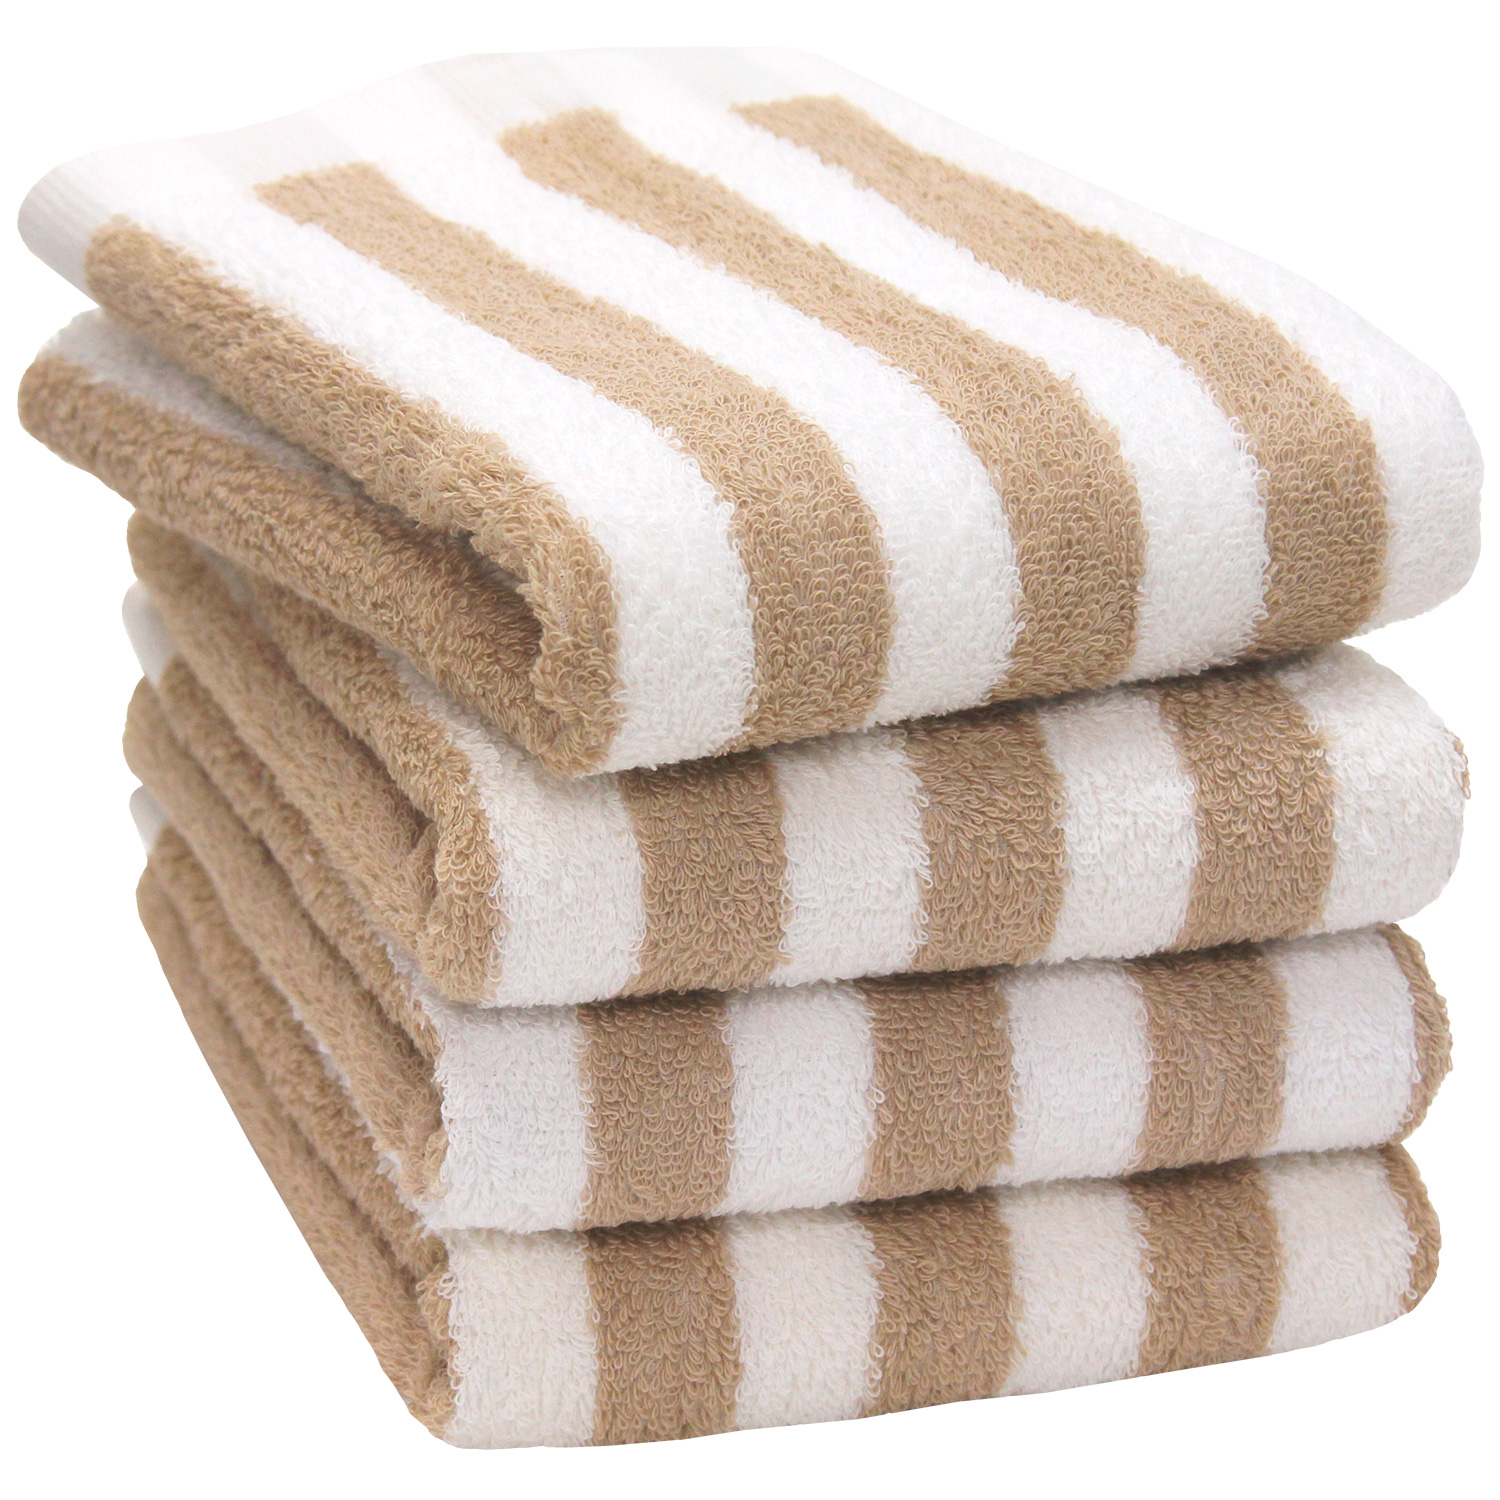 Hiorie Imabari Towel Hotel/'s Face Towel 3 Sheets 100/% cotton Japan Gift